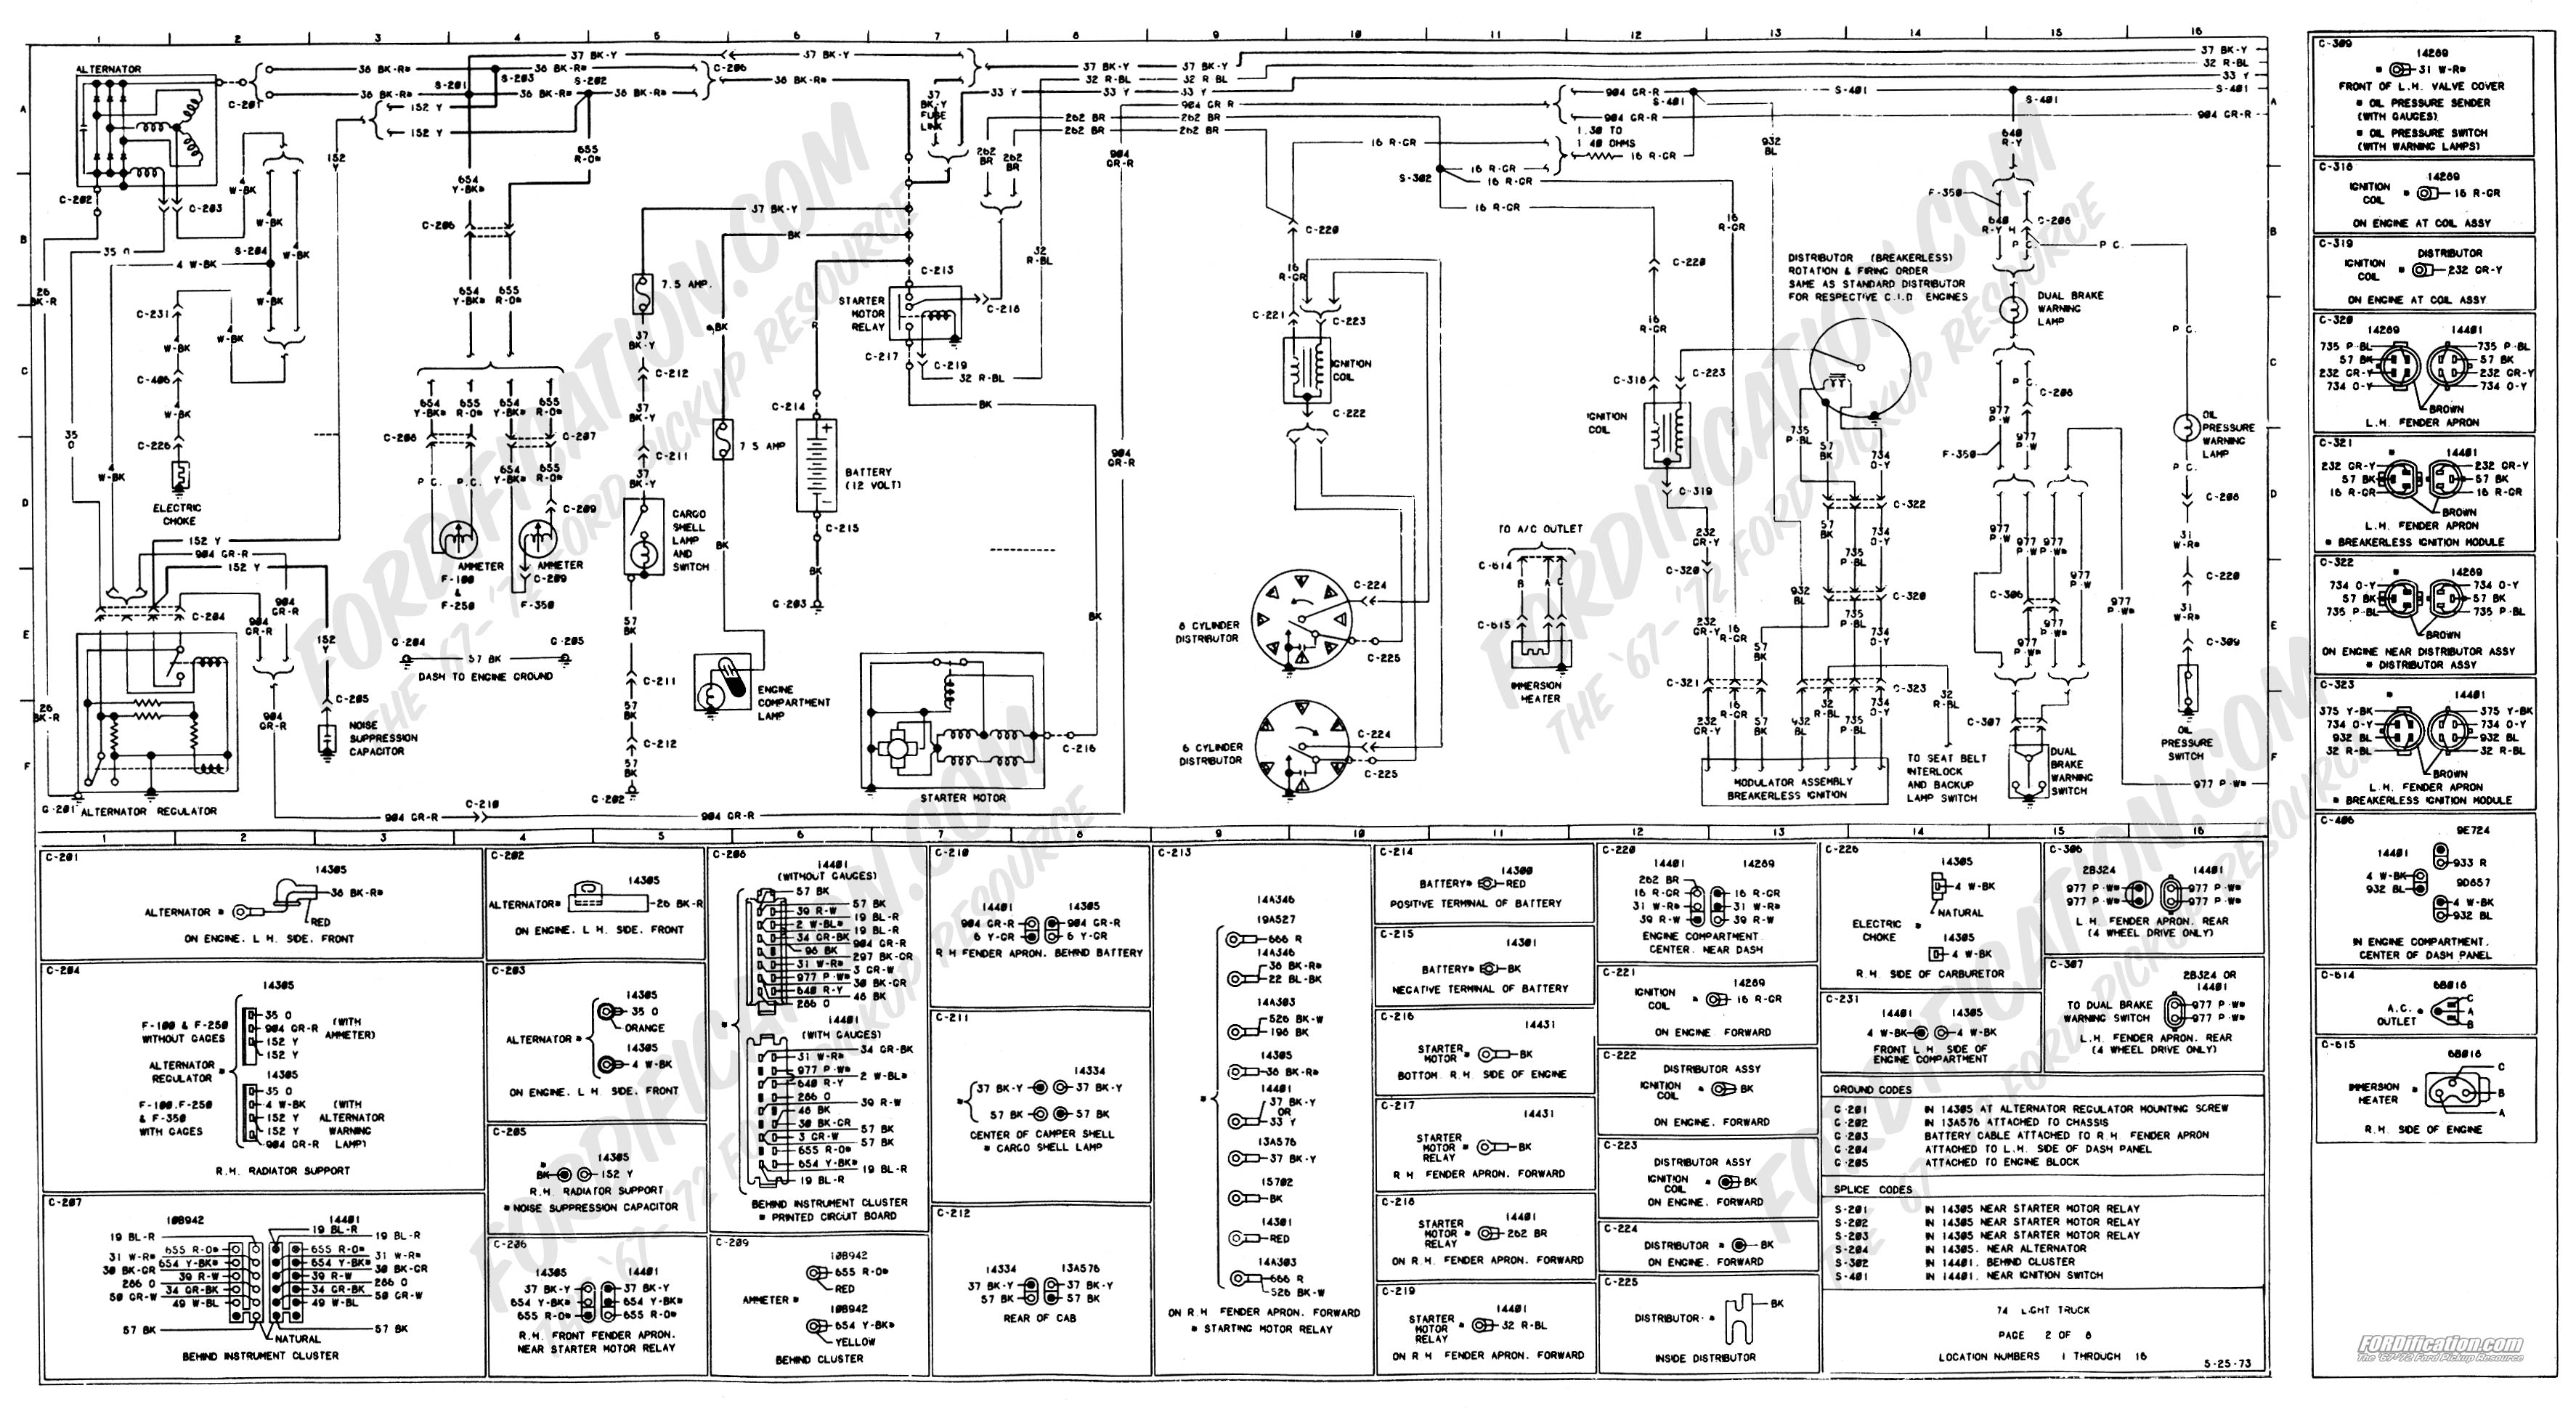 1951 mercury wiring diagram 1973 1979 ford truck wiring diagrams   schematics fordification net  1973 1979 ford truck wiring diagrams